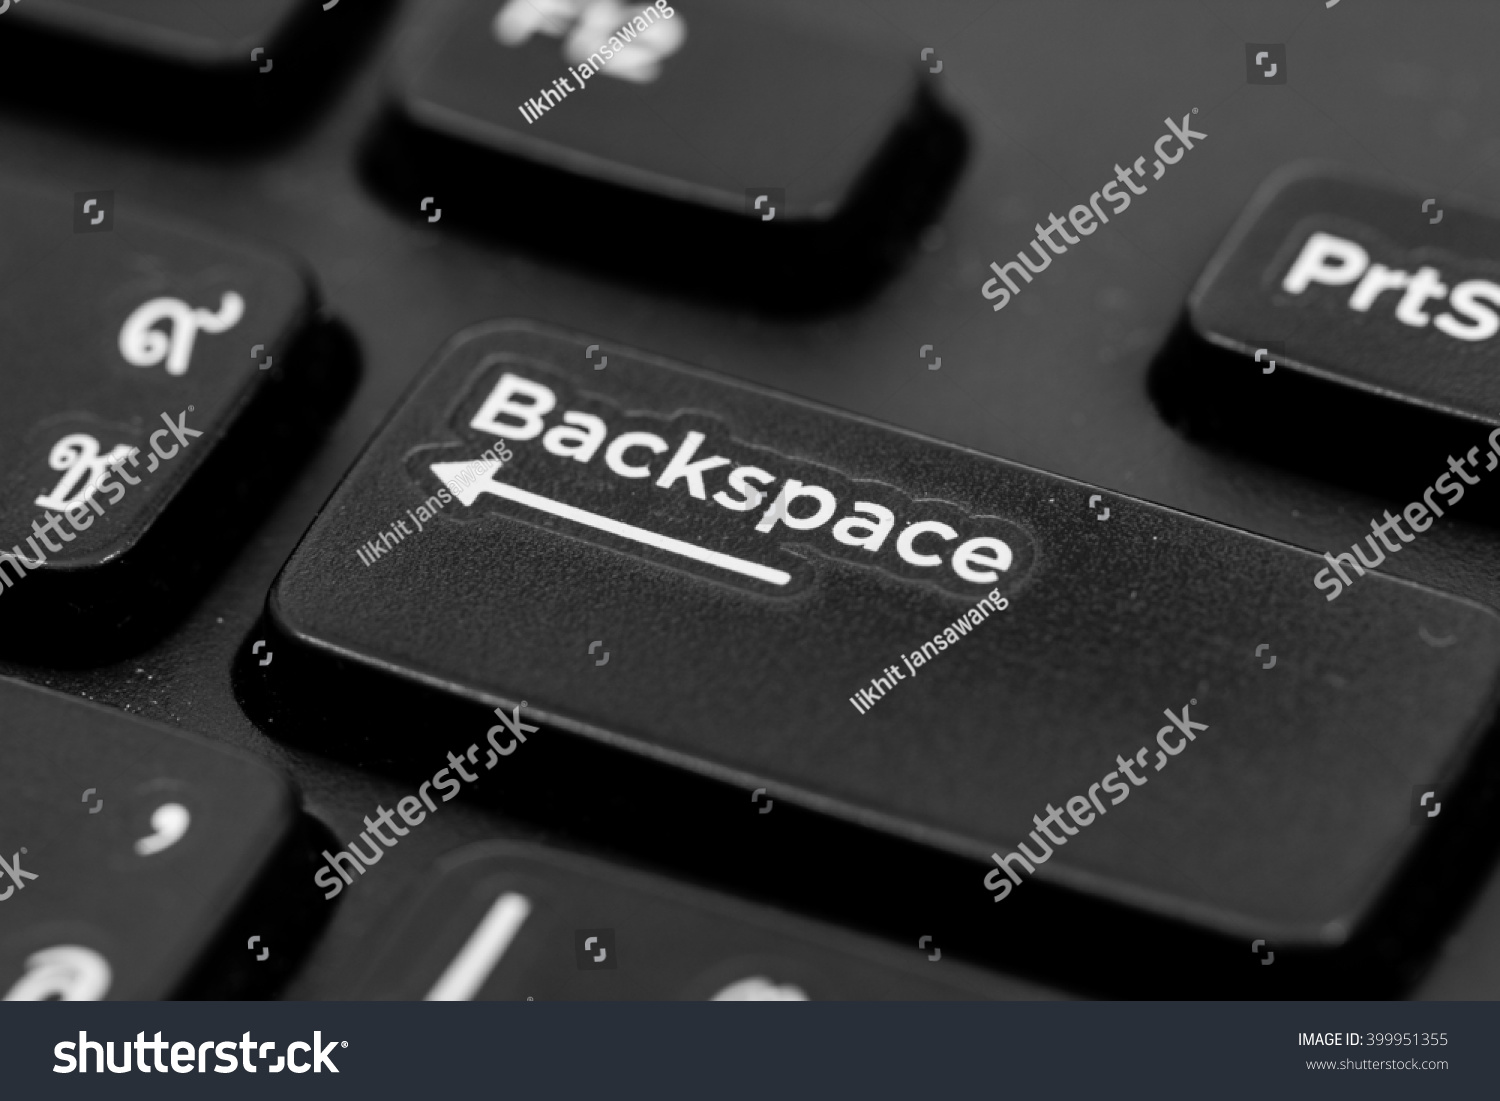 A keyboard with a button Backspace #399951355